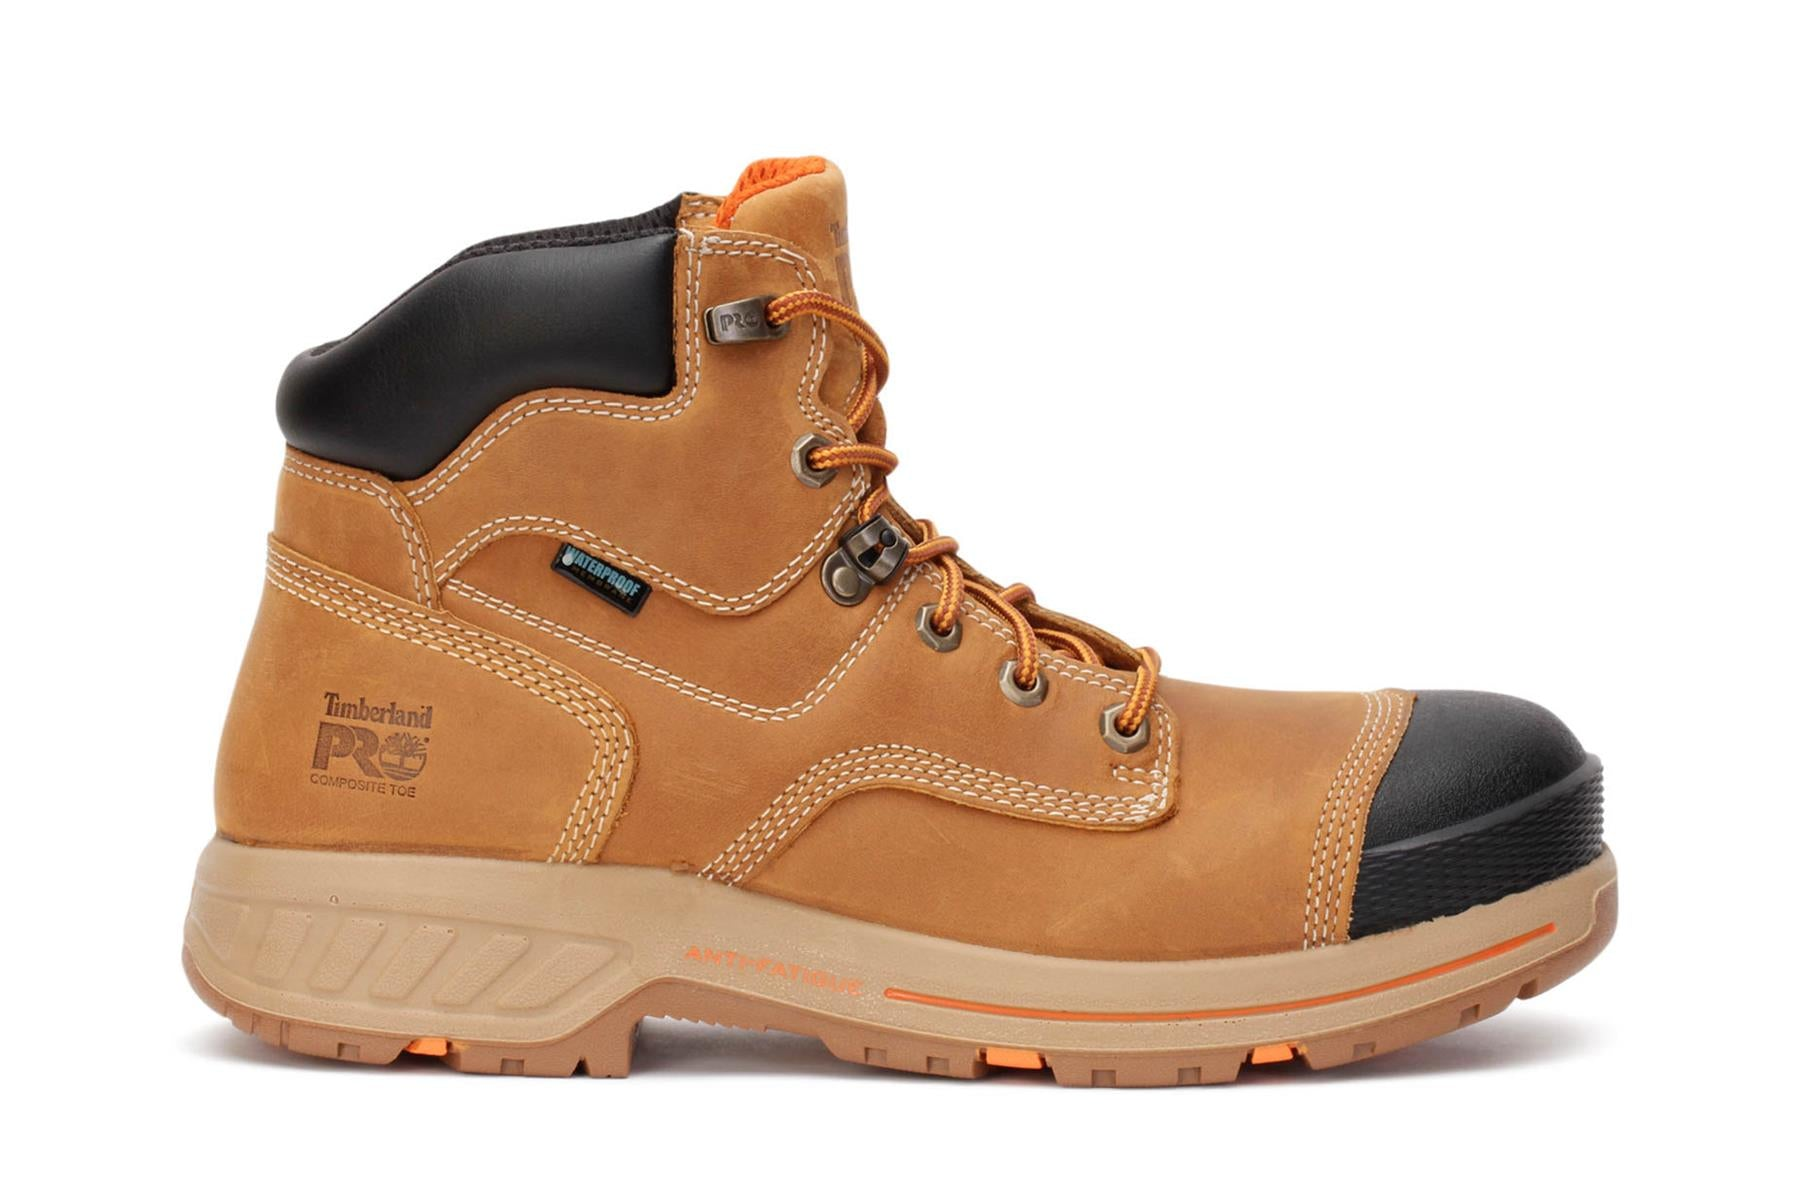 timberland-pro-mens-helix-hd-6-compsite-safety-toe-work-boots-wheat-a1hpy-main